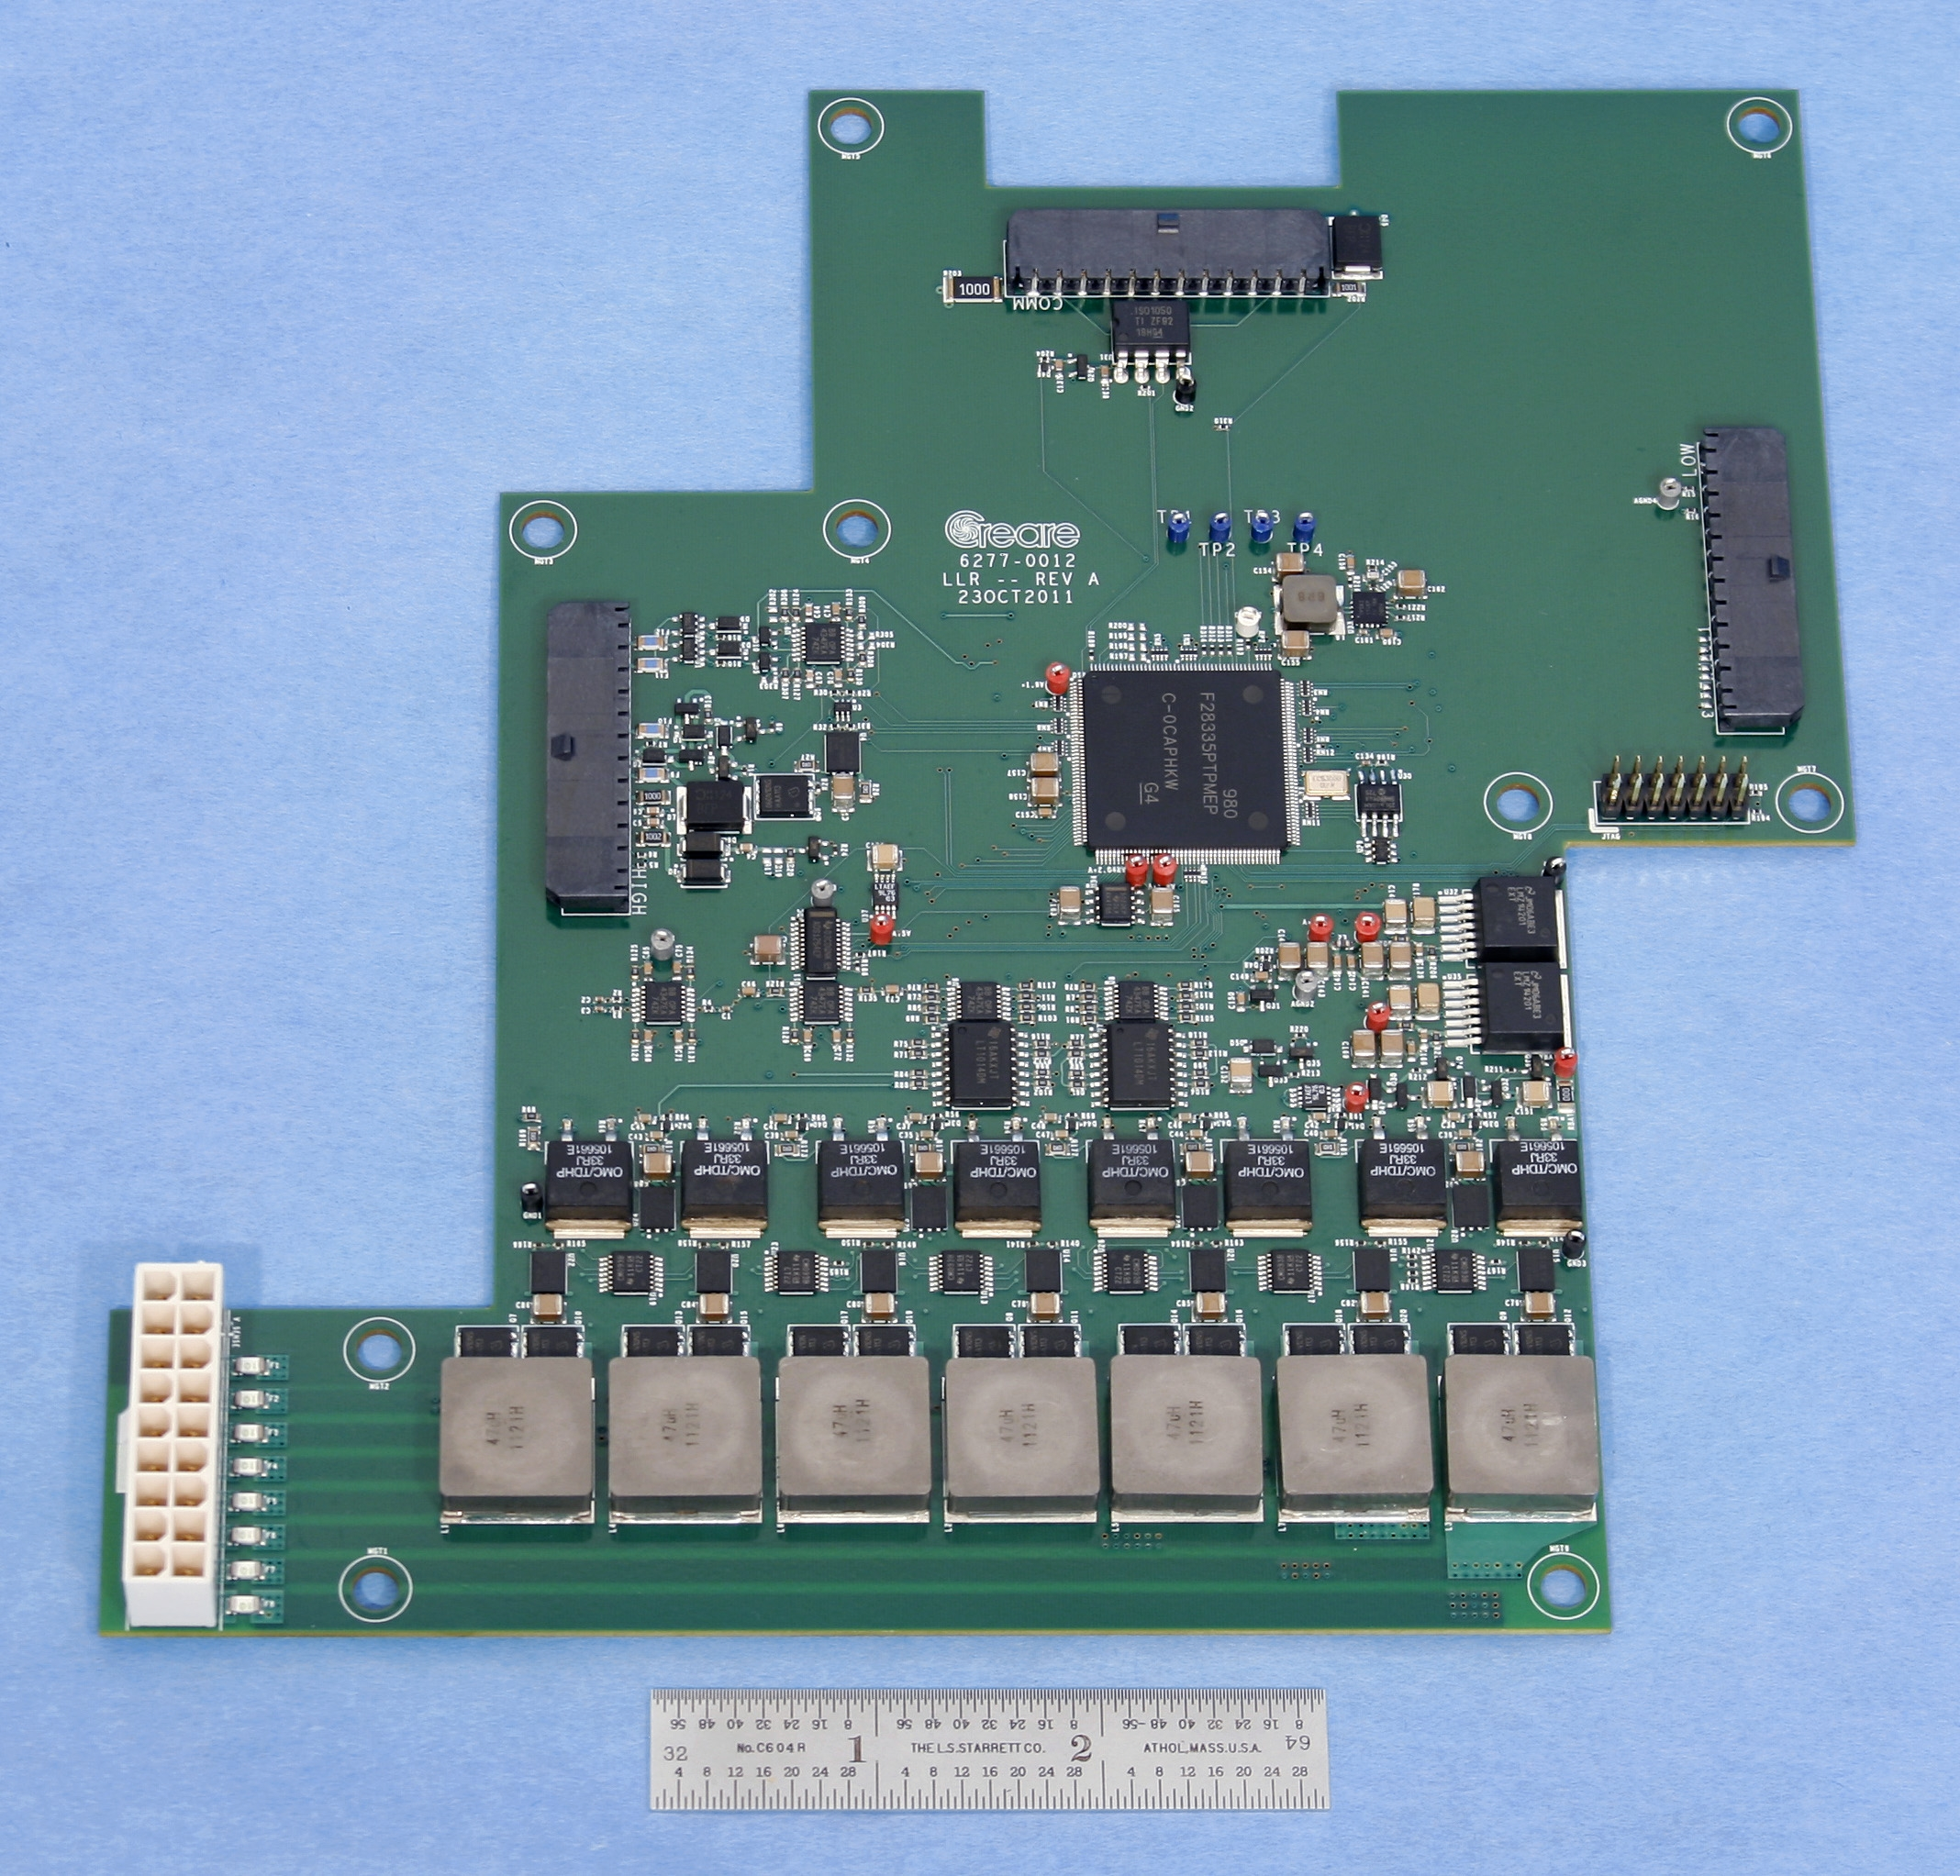 Circuit board for Creare's battery management system (BMS)